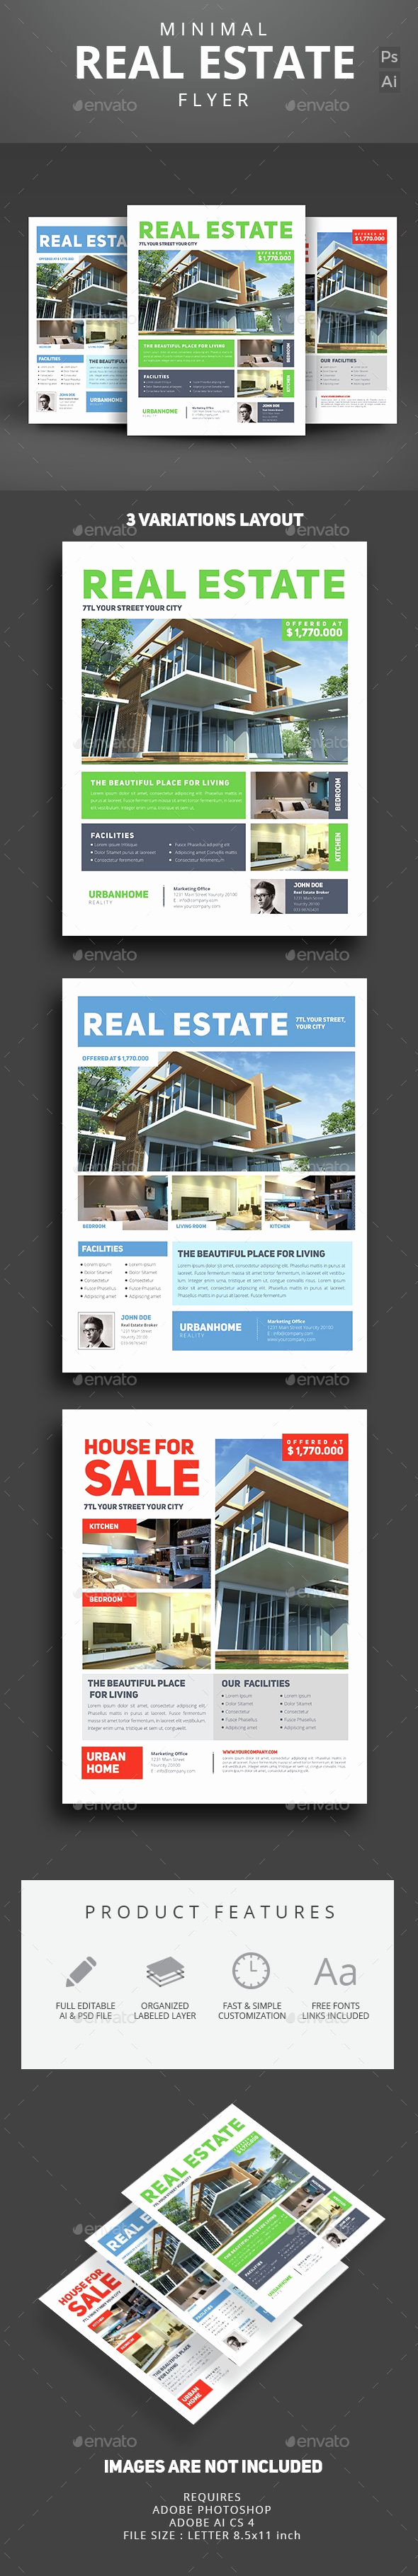 Real Estate Marketing Flyers New 1000 Ideas About Marketing Flyers On Pinterest